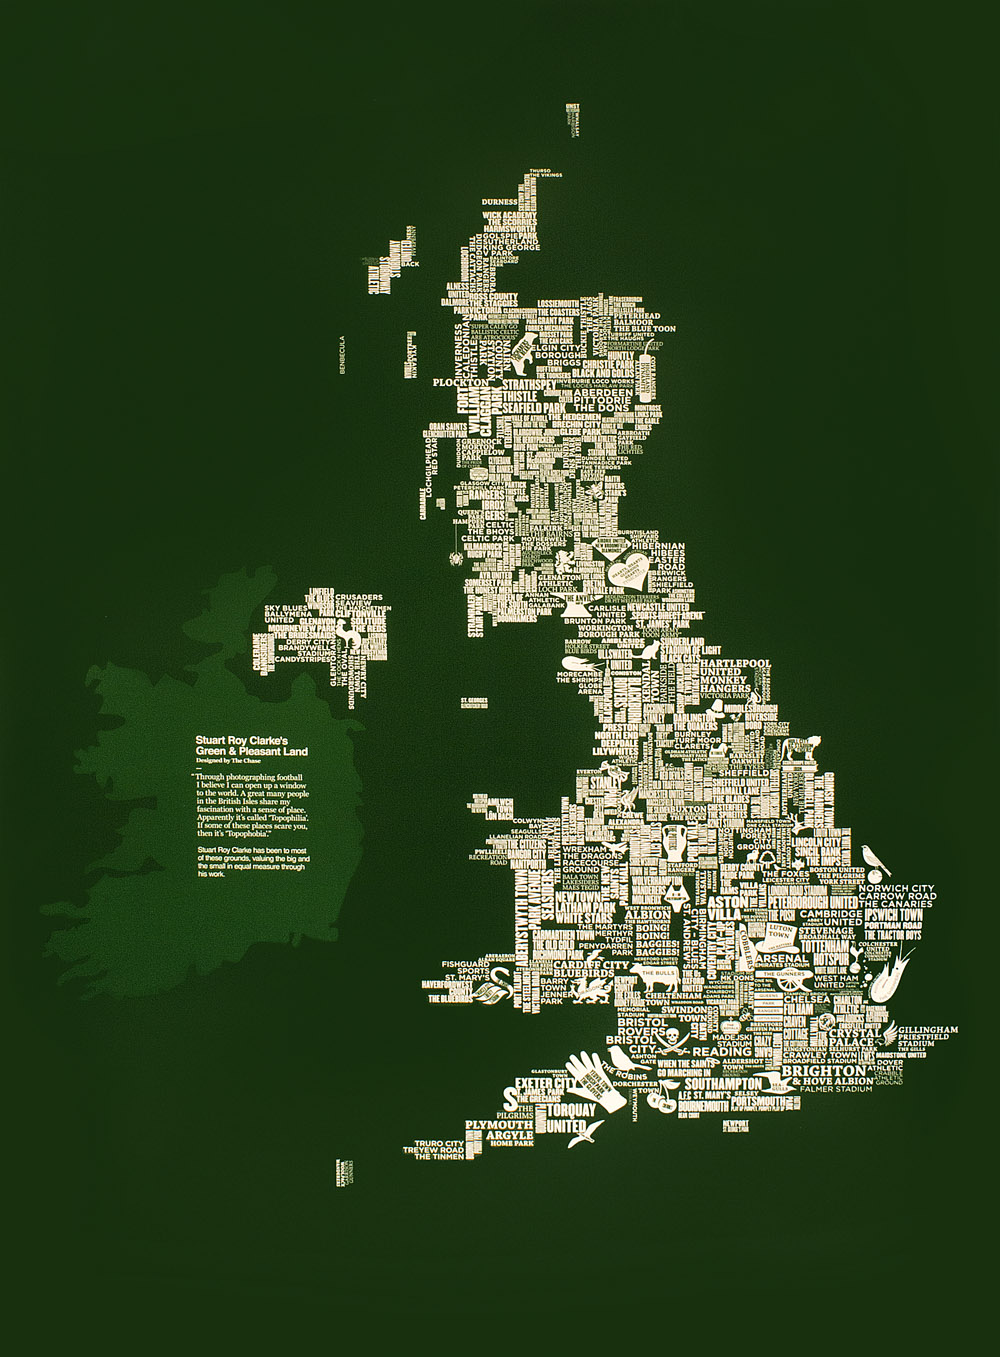 Stuart-Roy-Clarke-Homes-of-Football-Map-Print